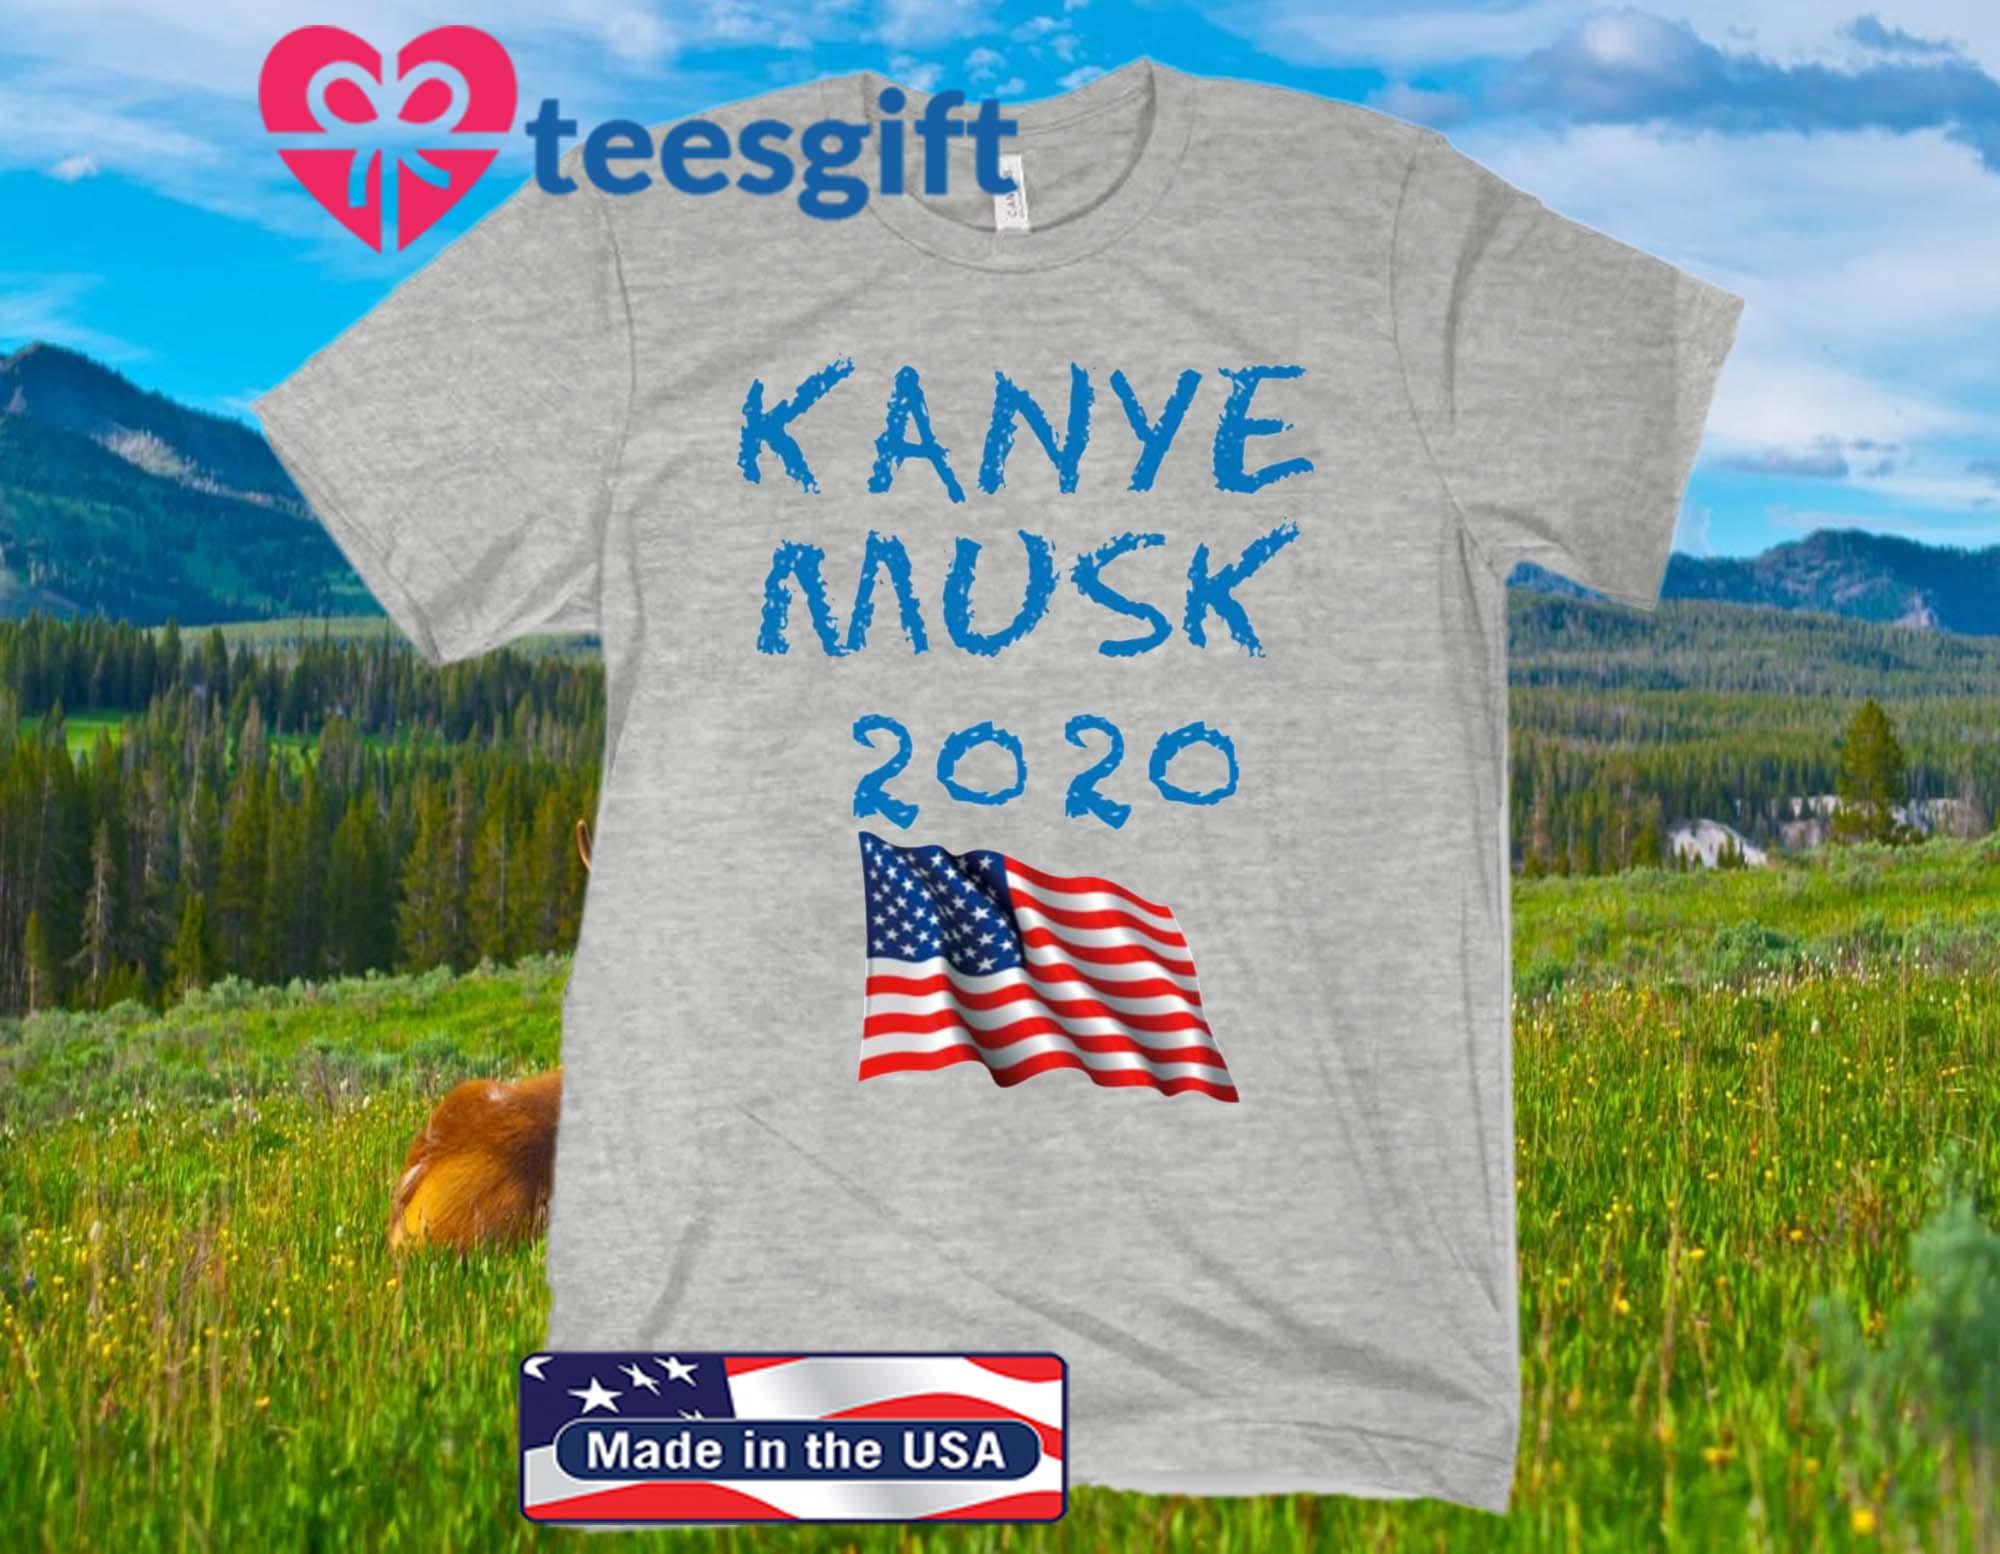 Kanye Musk 2020 American Flag Official T-Shirt